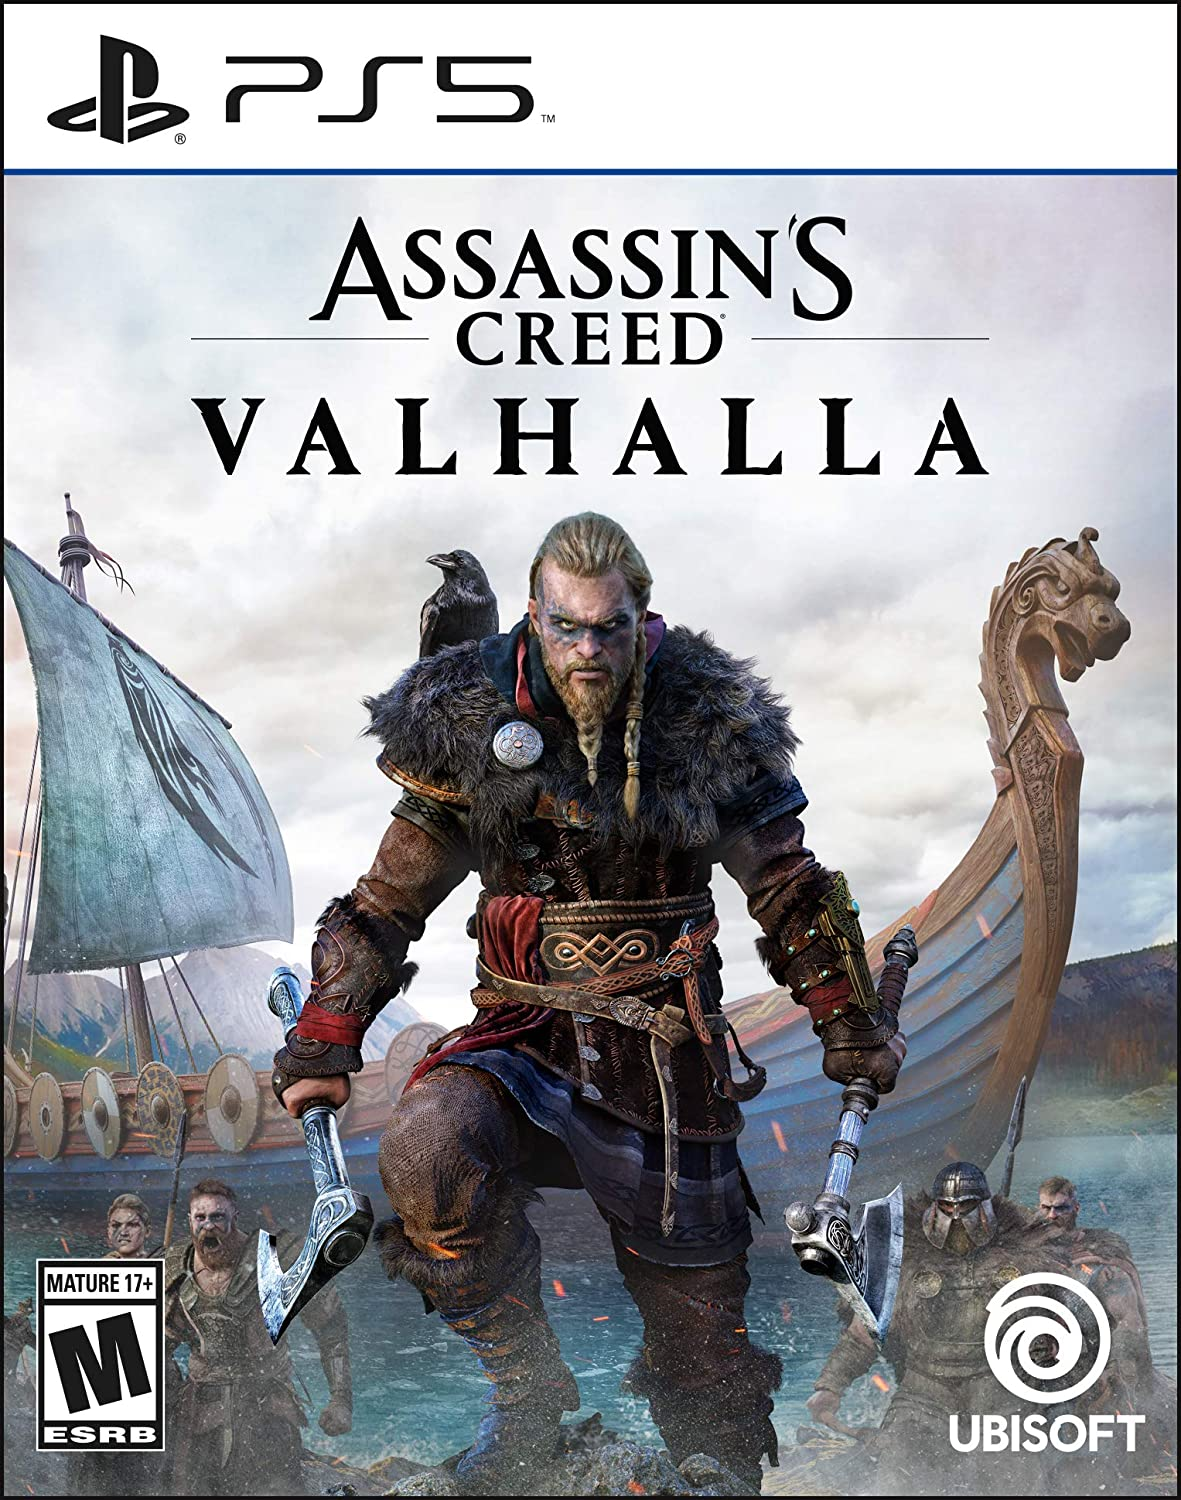 Assassin's Creed Valhalla PlayStation 5  Video Game   $24.99 Coupon